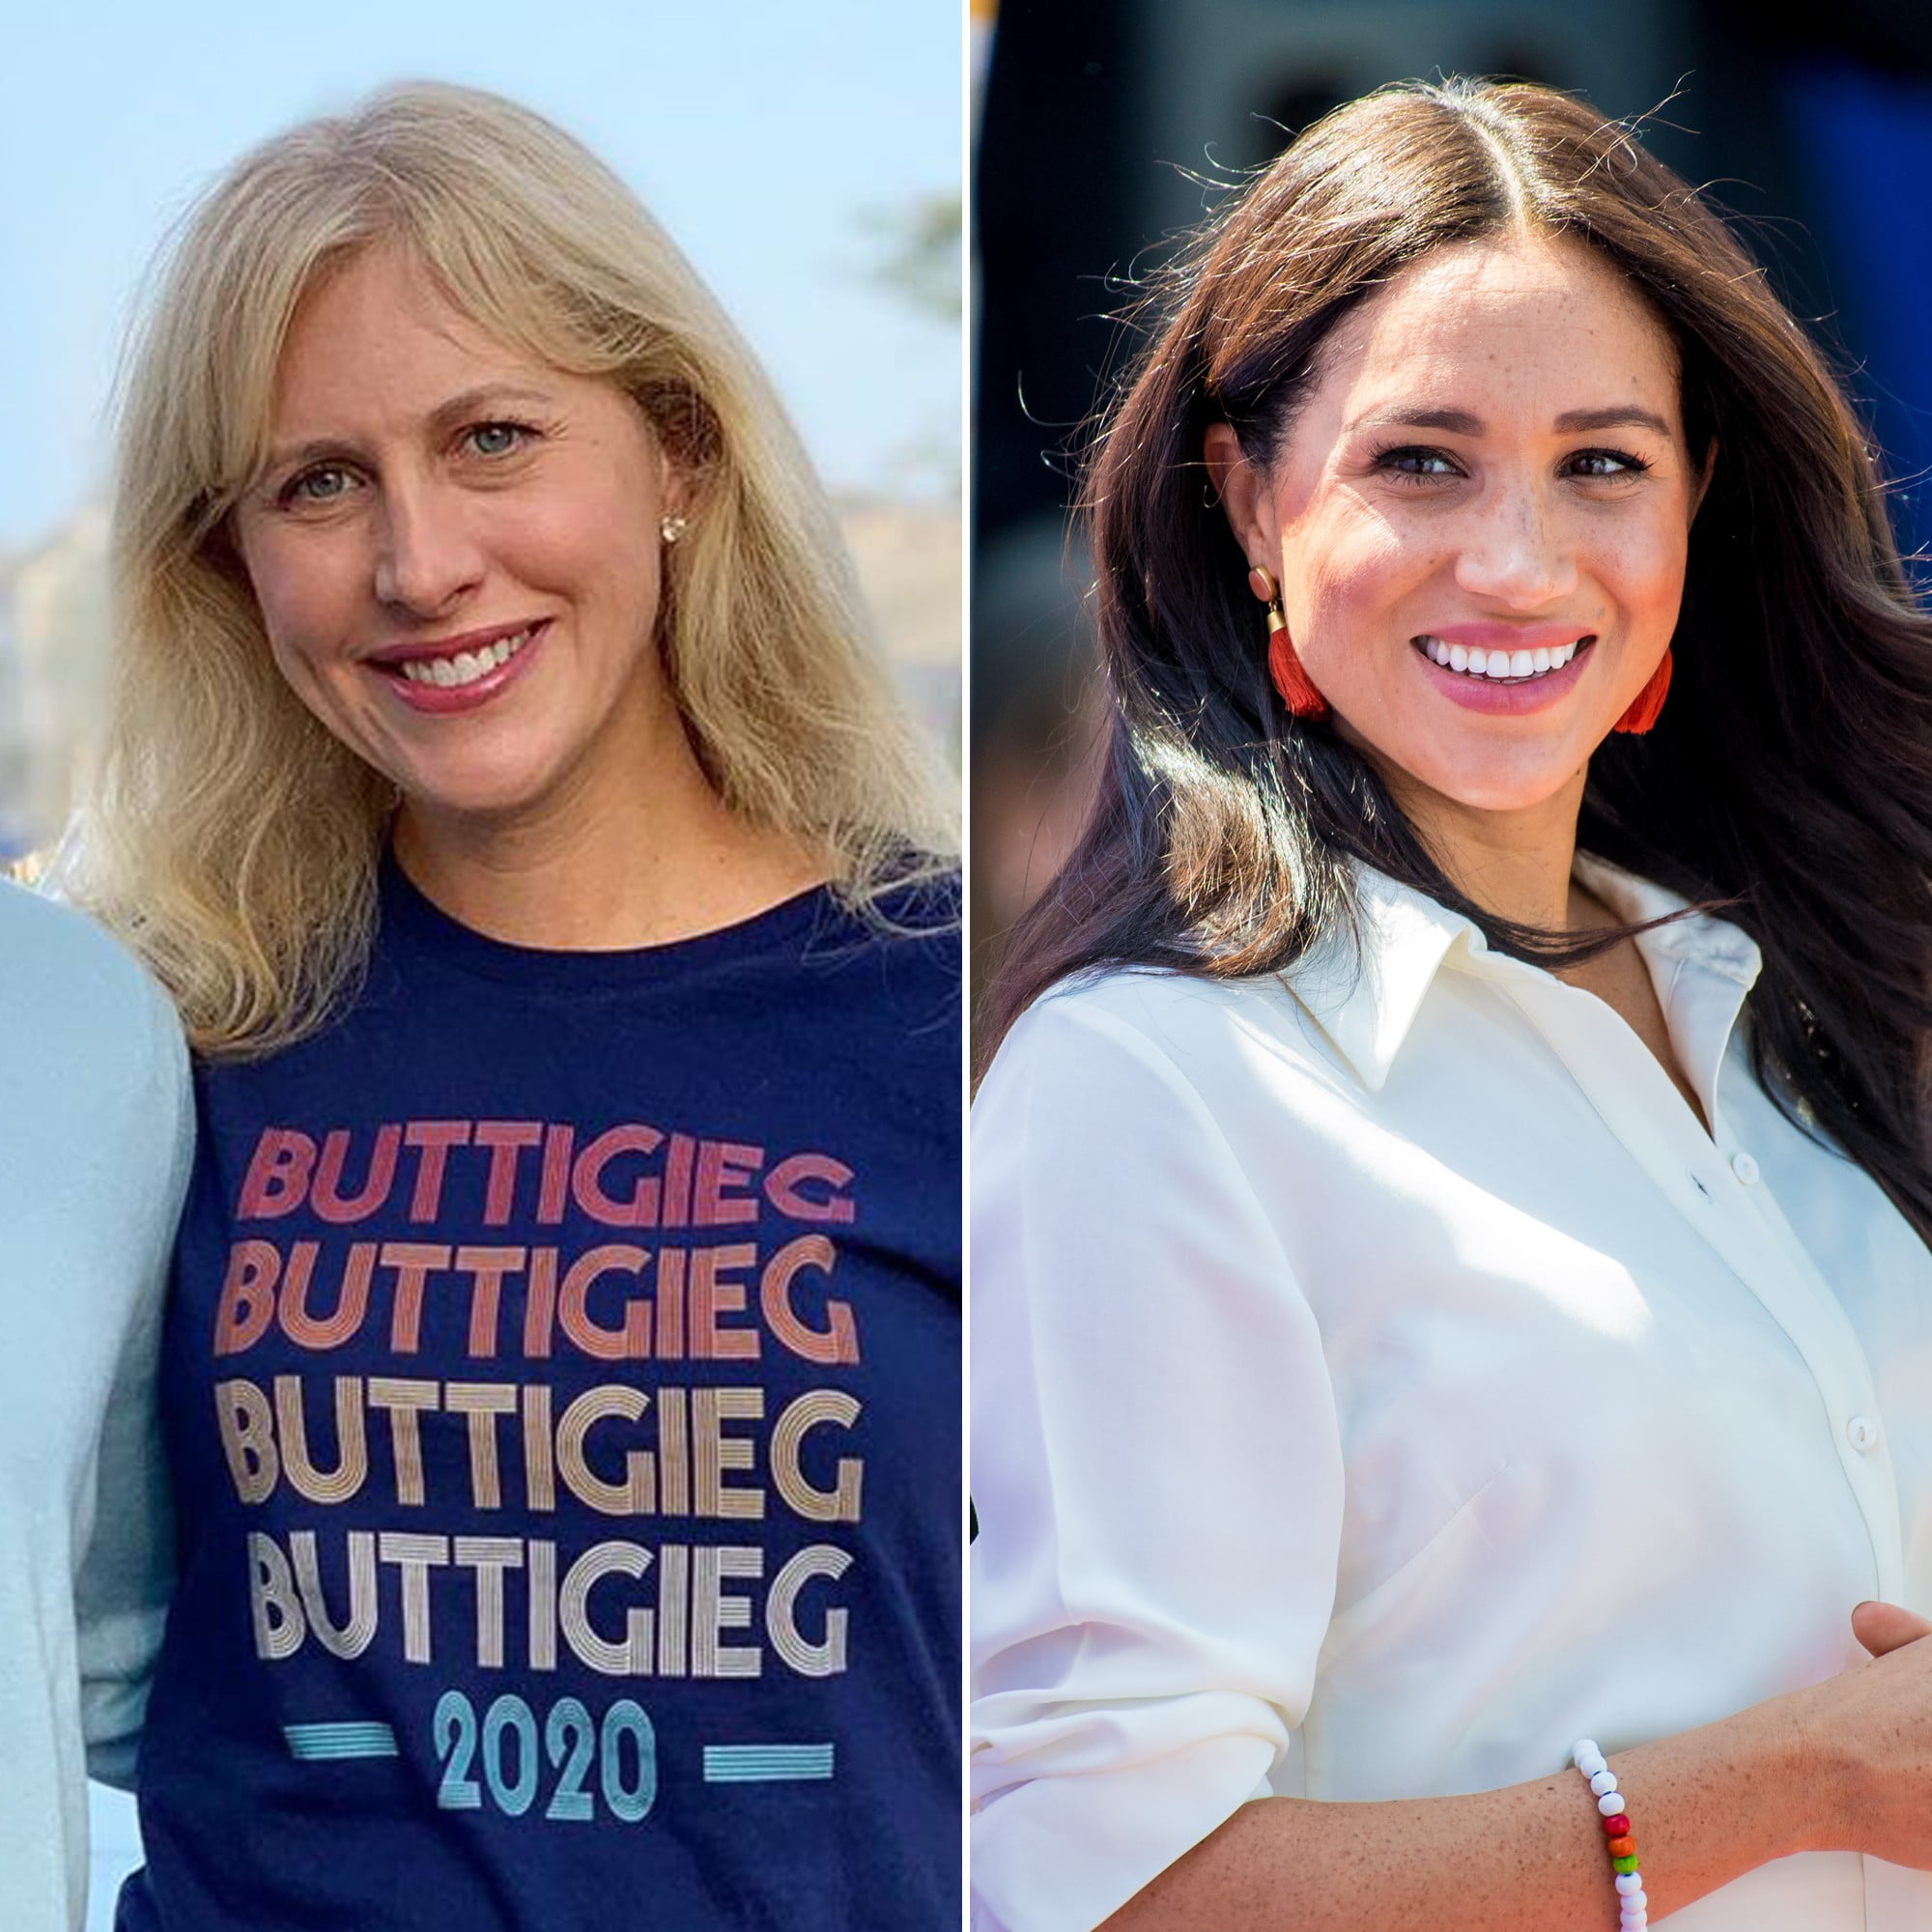 Emily Giffin Apologizes for Blasting Meghan Markle: My Feelings 'Changed'